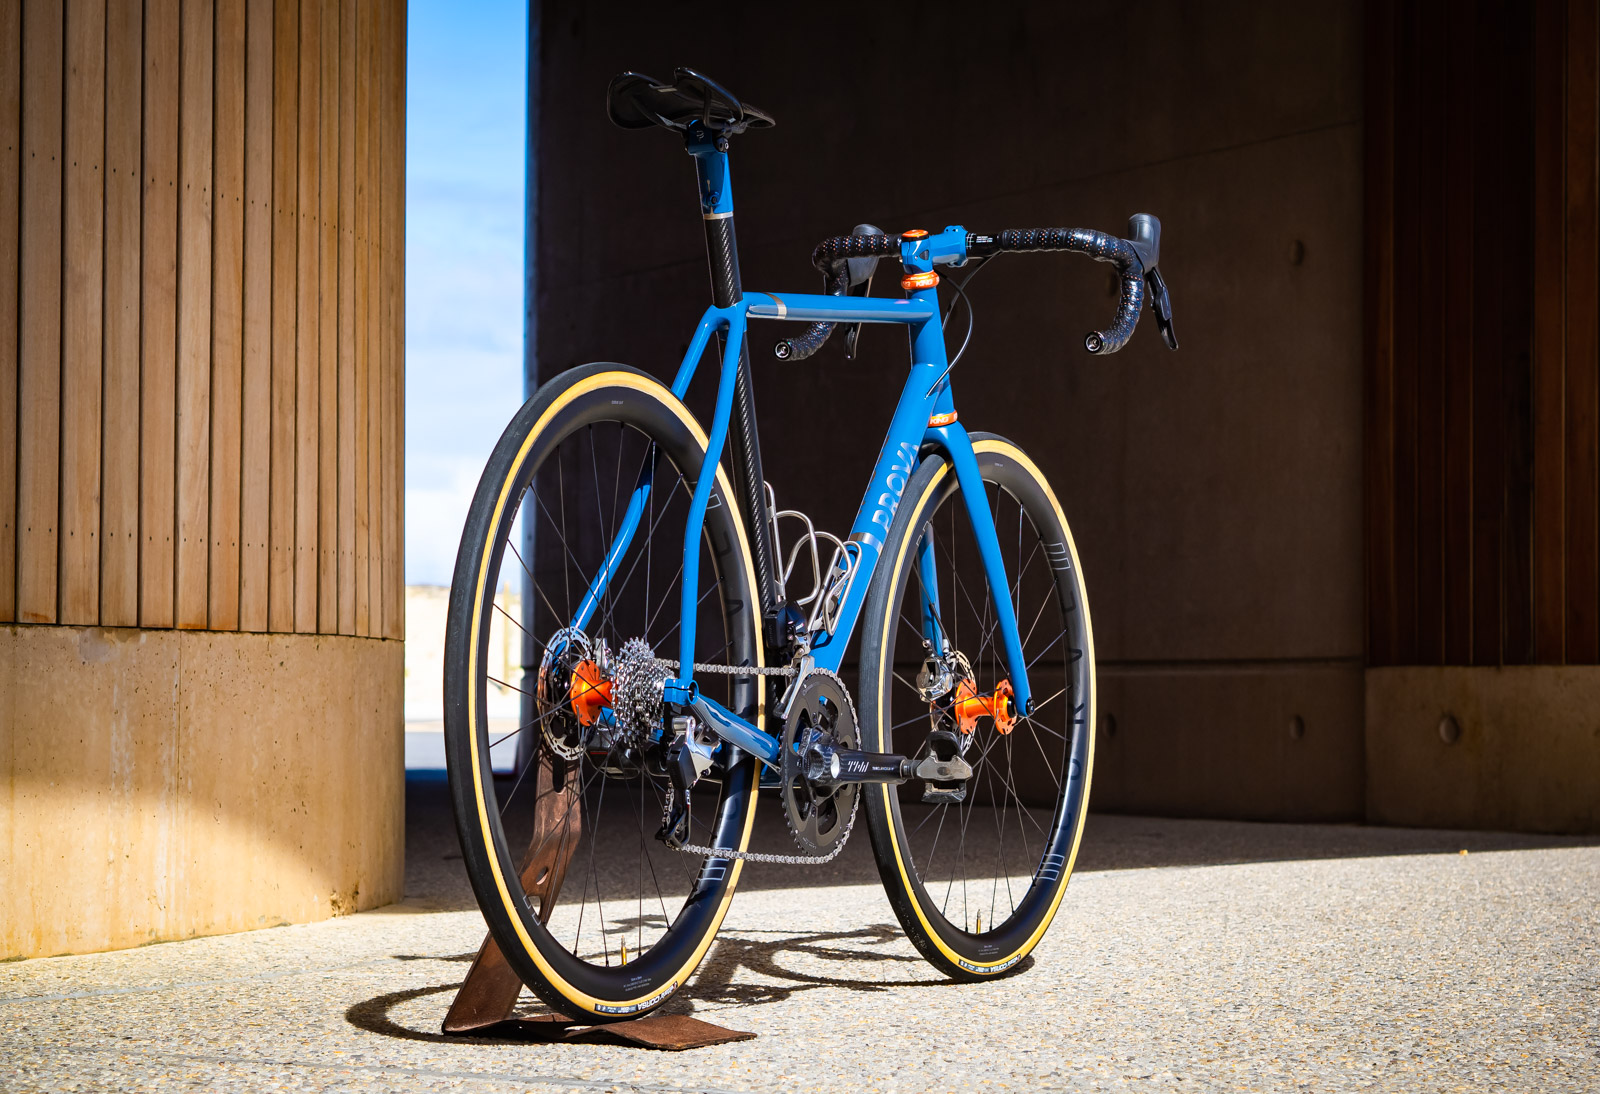 Prova Cycles - Custom Steel Bicycle Frames